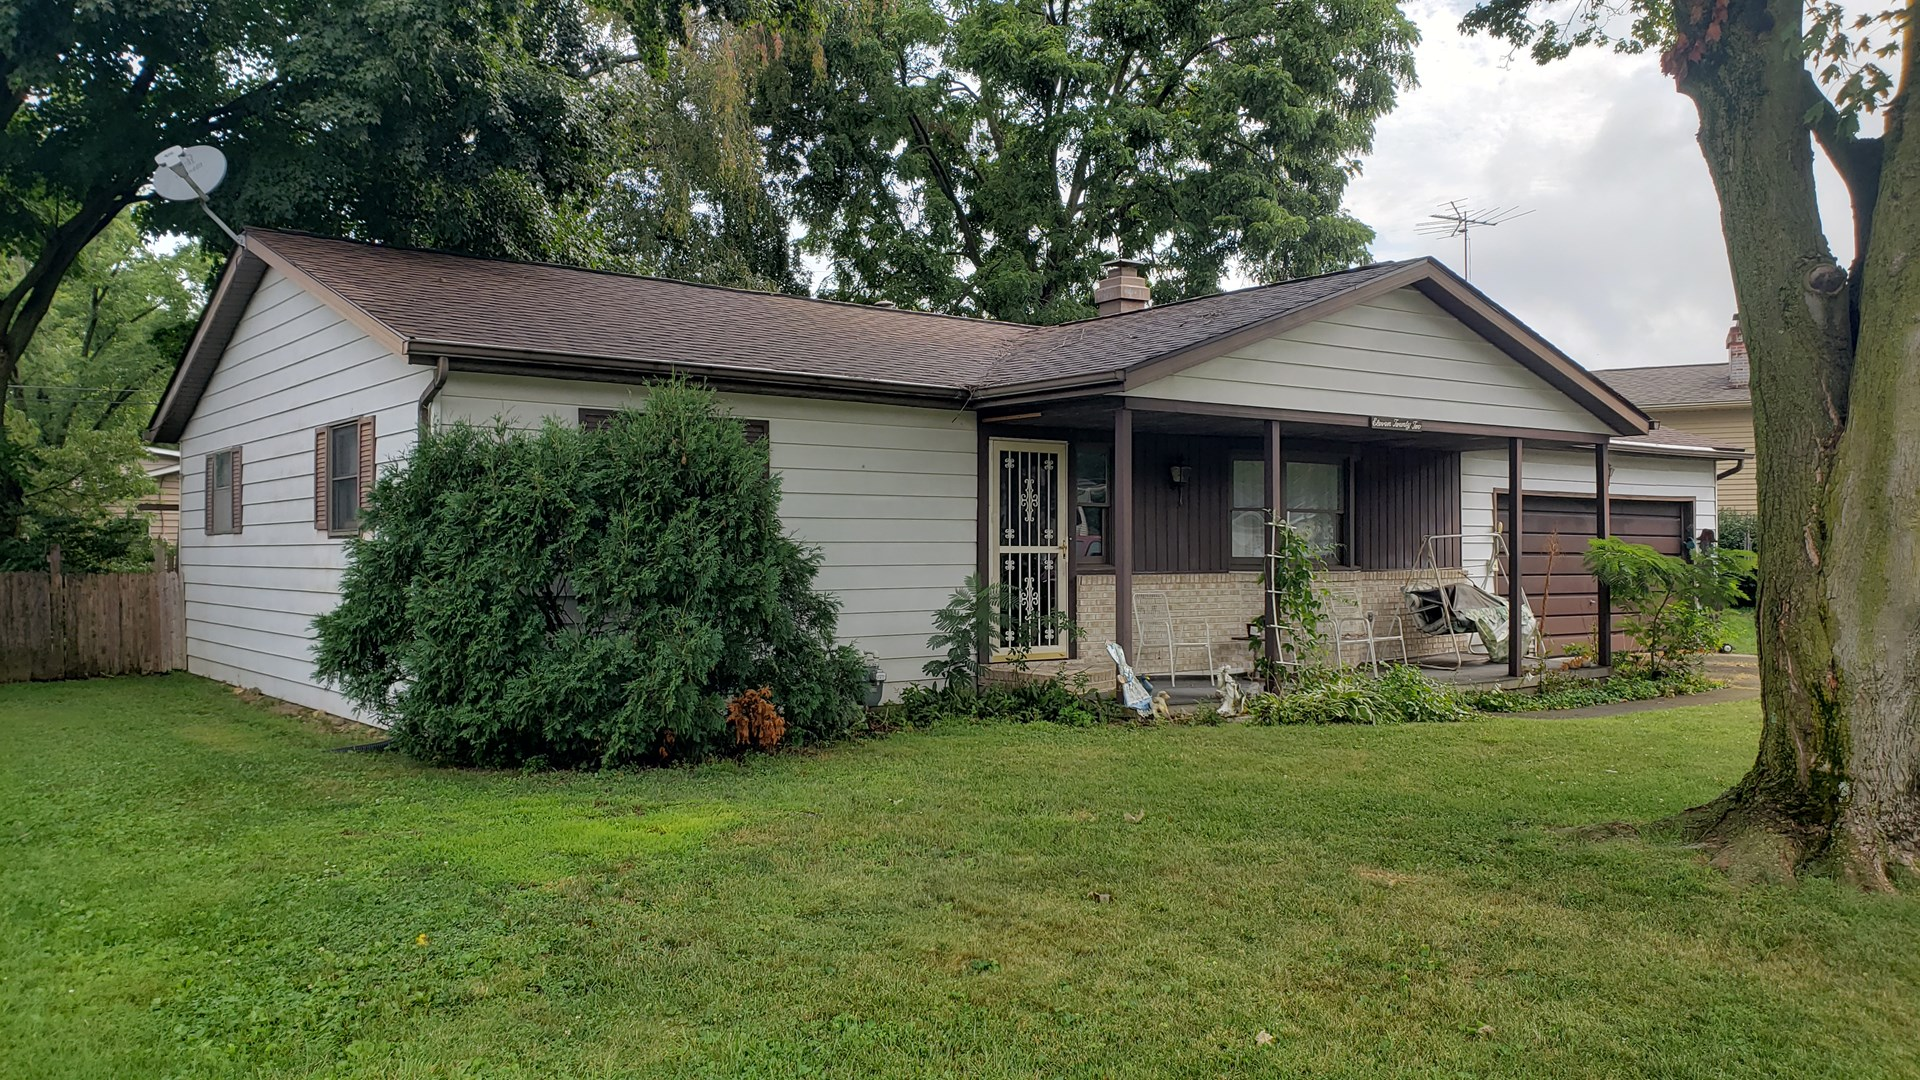 Single Family Ranch Home and Pers. Prop. in Heath, Ohio For Auction